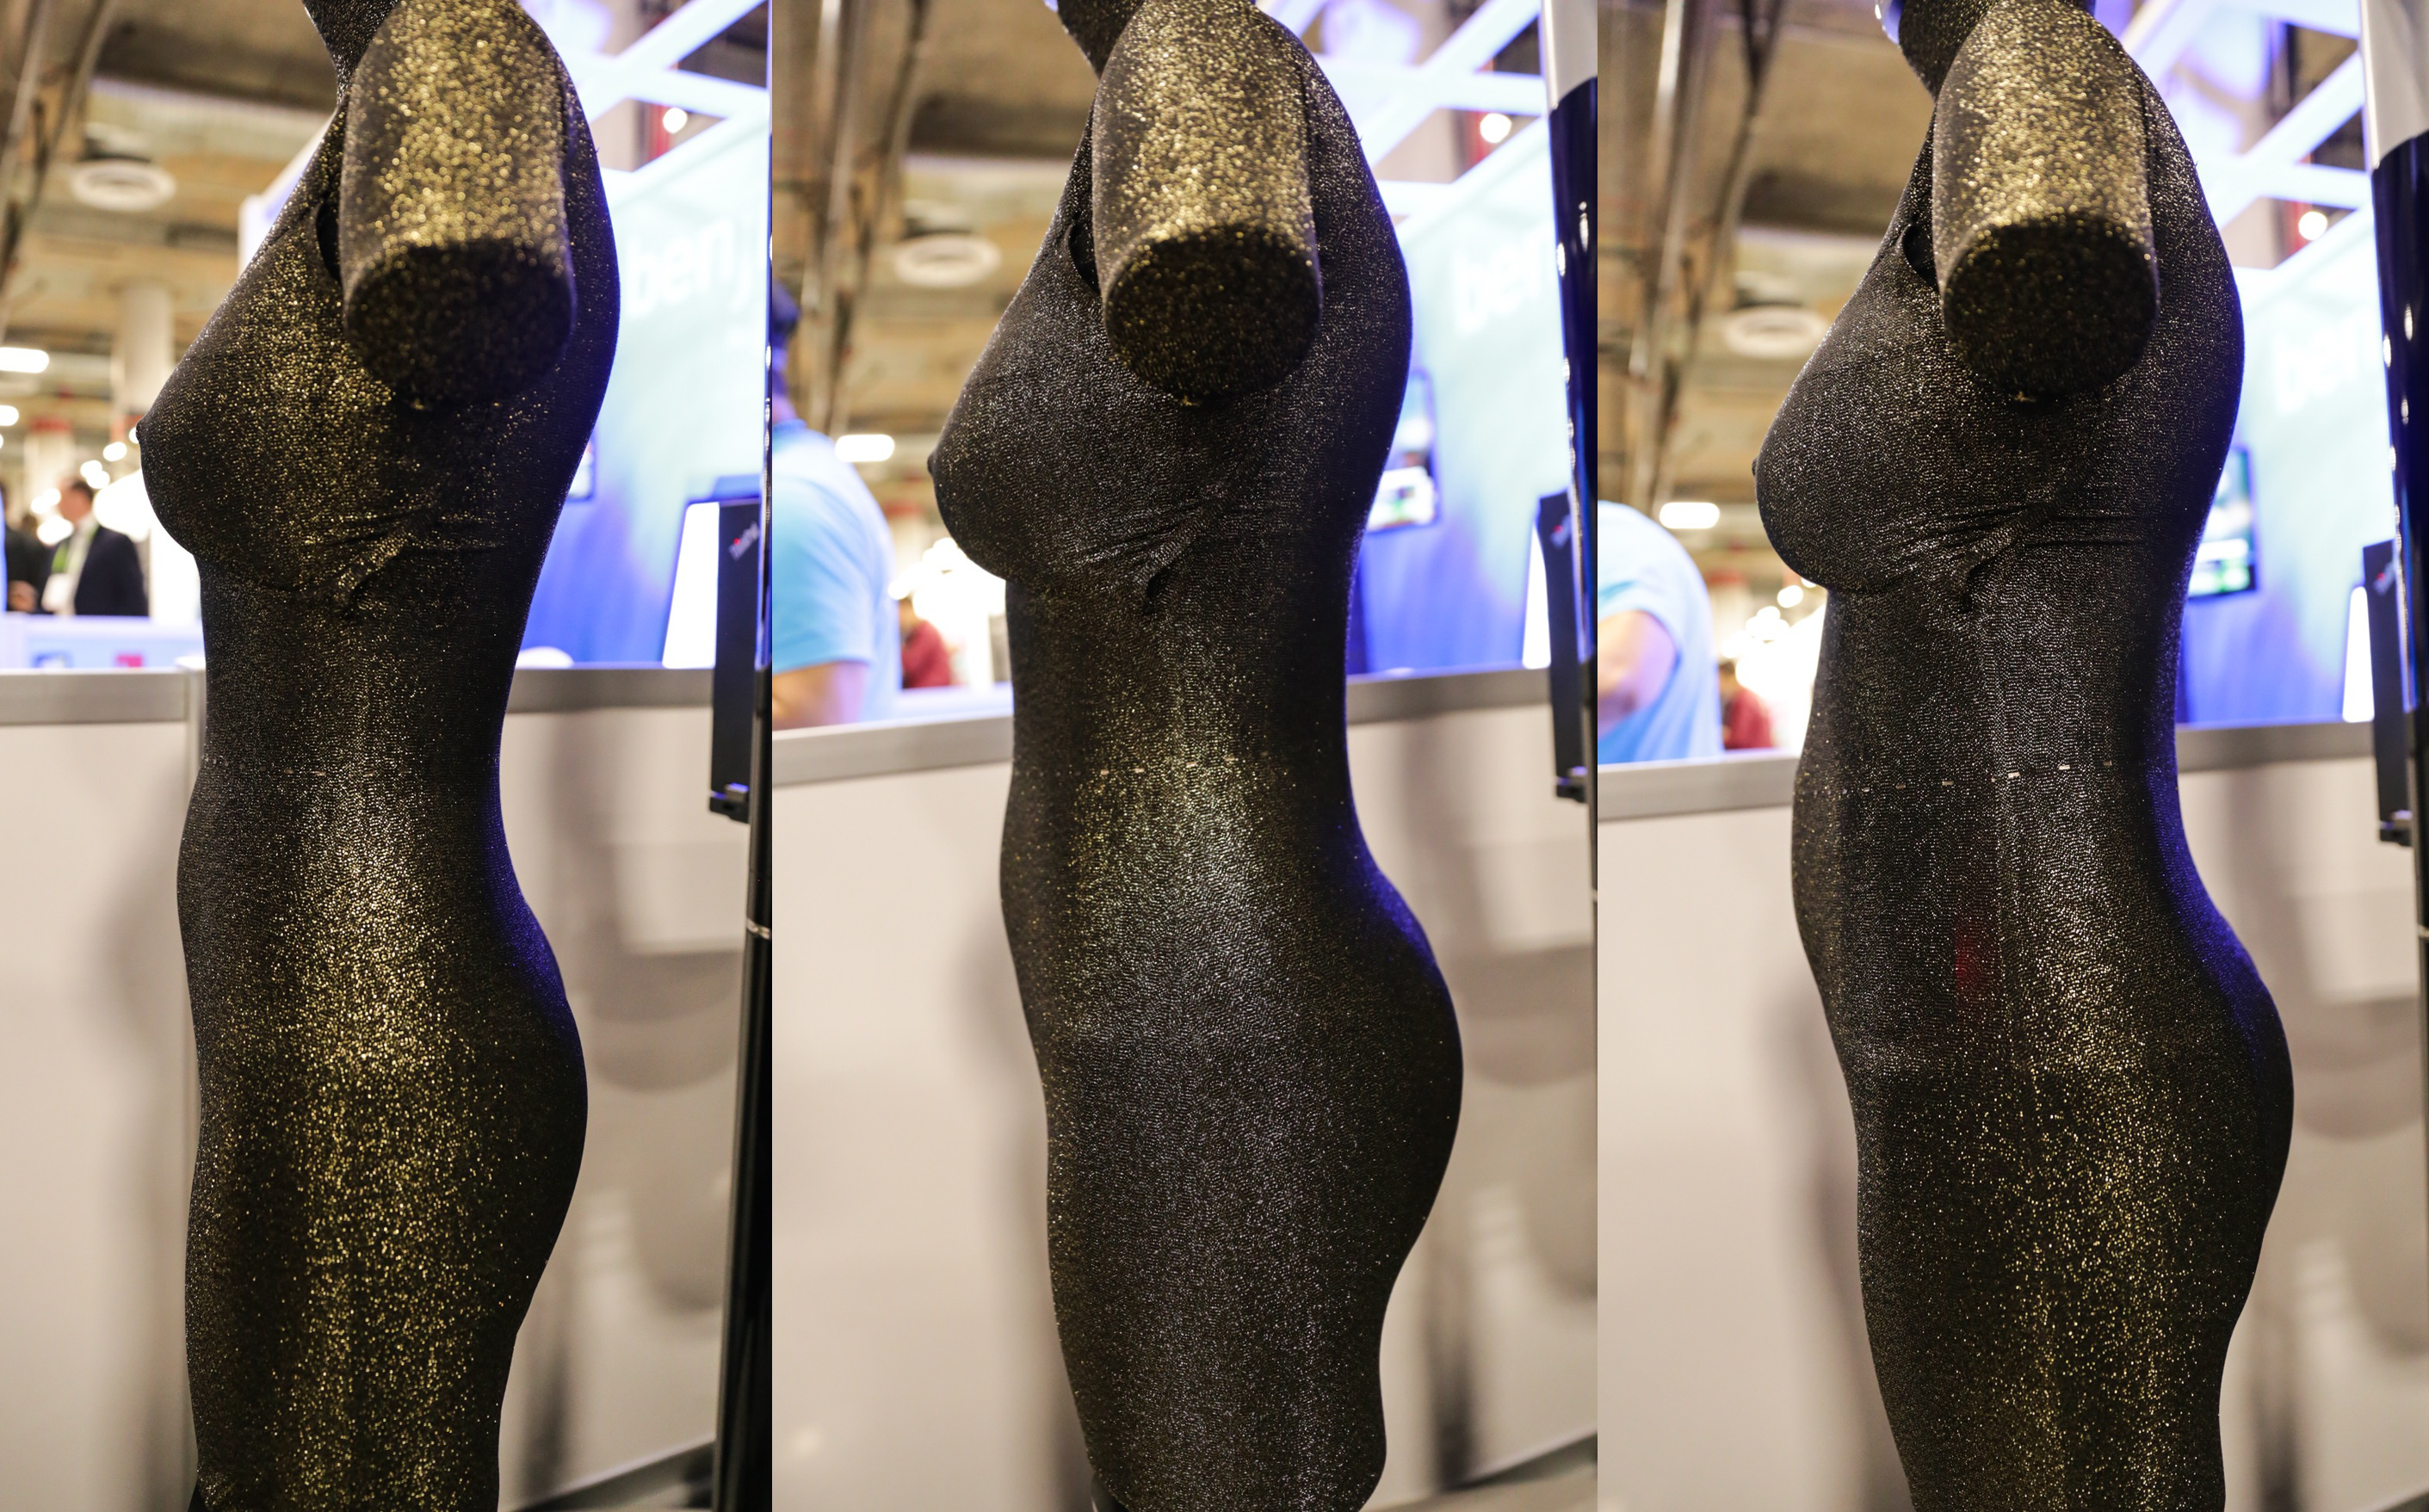 A Mannequin That Goes Against The Idea of One-size-fits-all